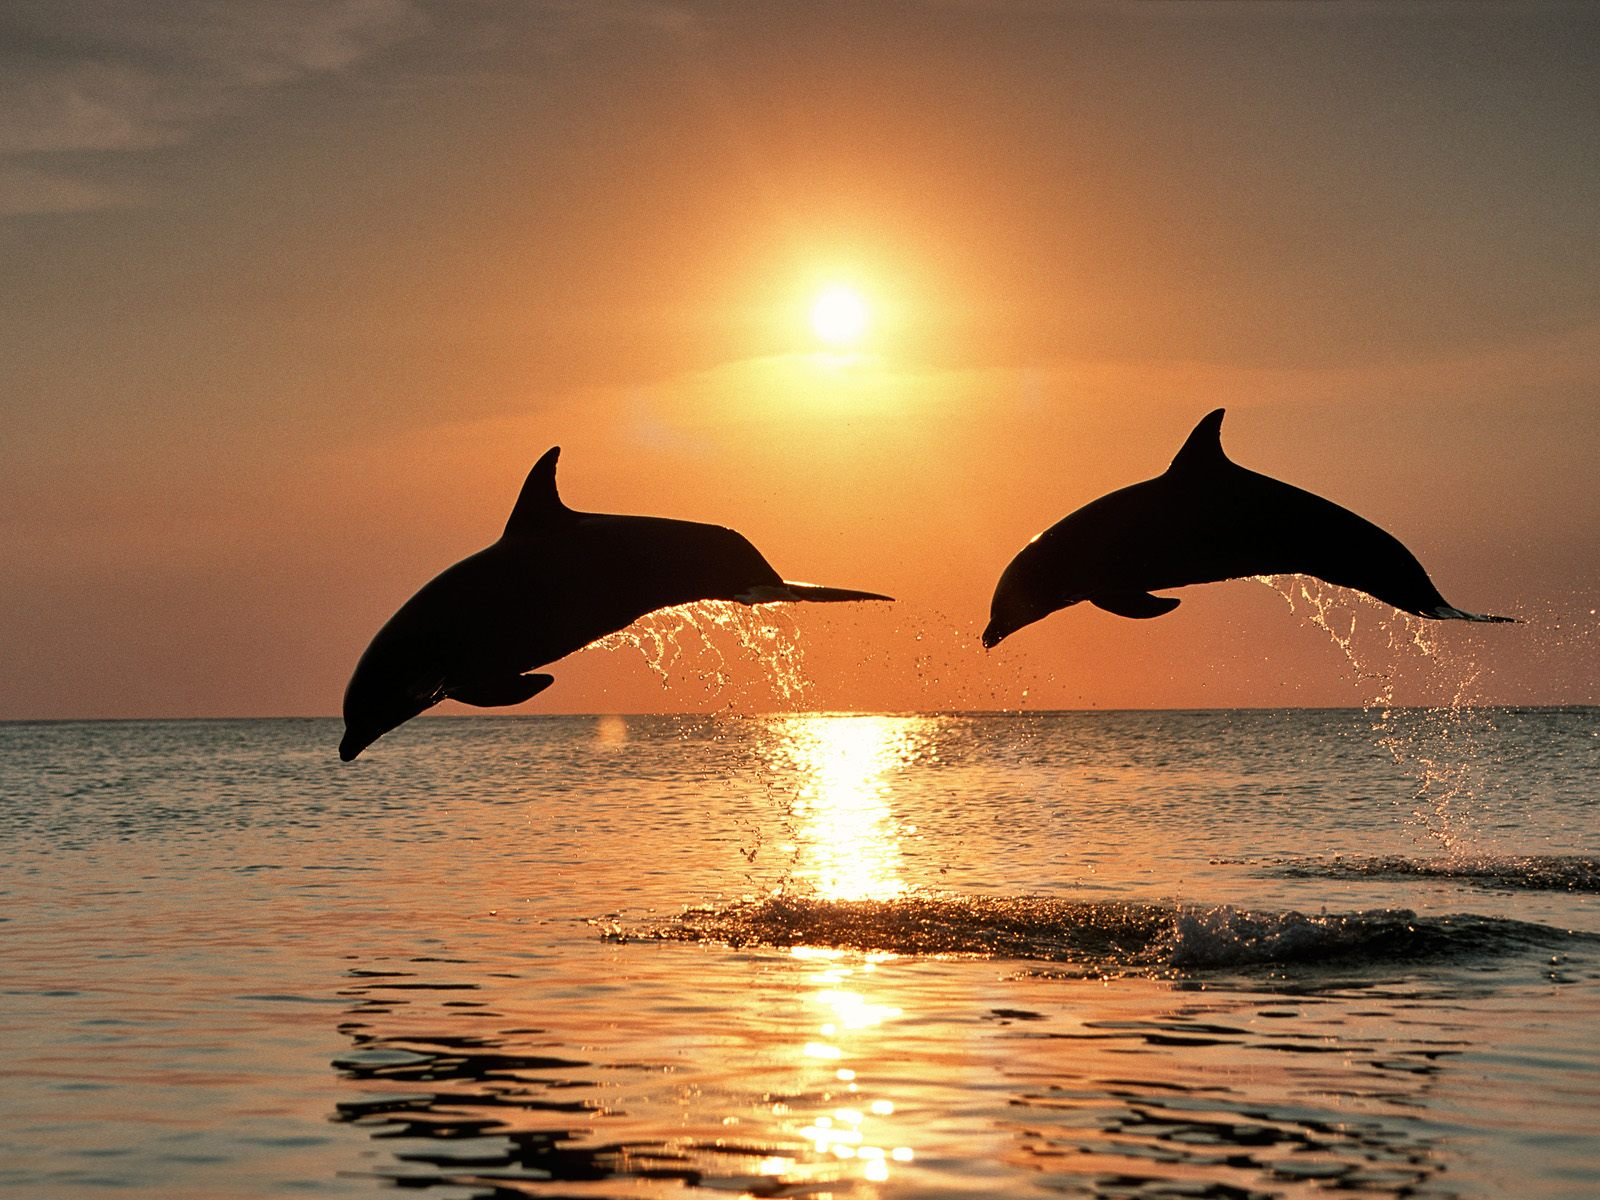 29 Dolphin Wallpapers   Wallpapers For You All the best wallpapers 1600x1200